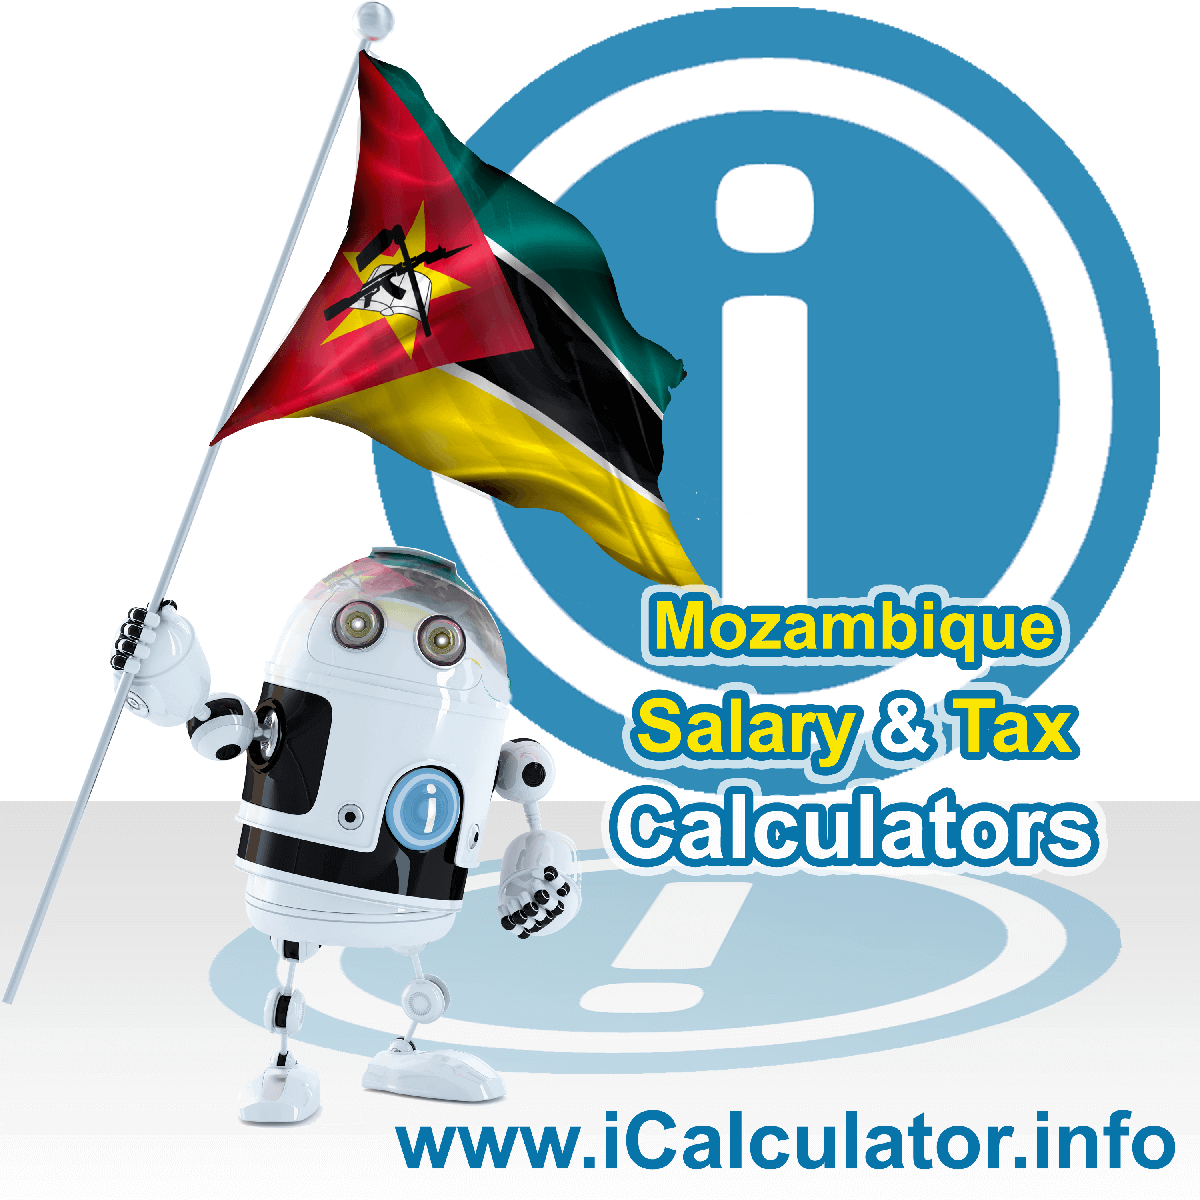 Mozambique Wage Calculator. This image shows the Mozambique flag and information relating to the tax formula for the Mozambique Tax Calculator